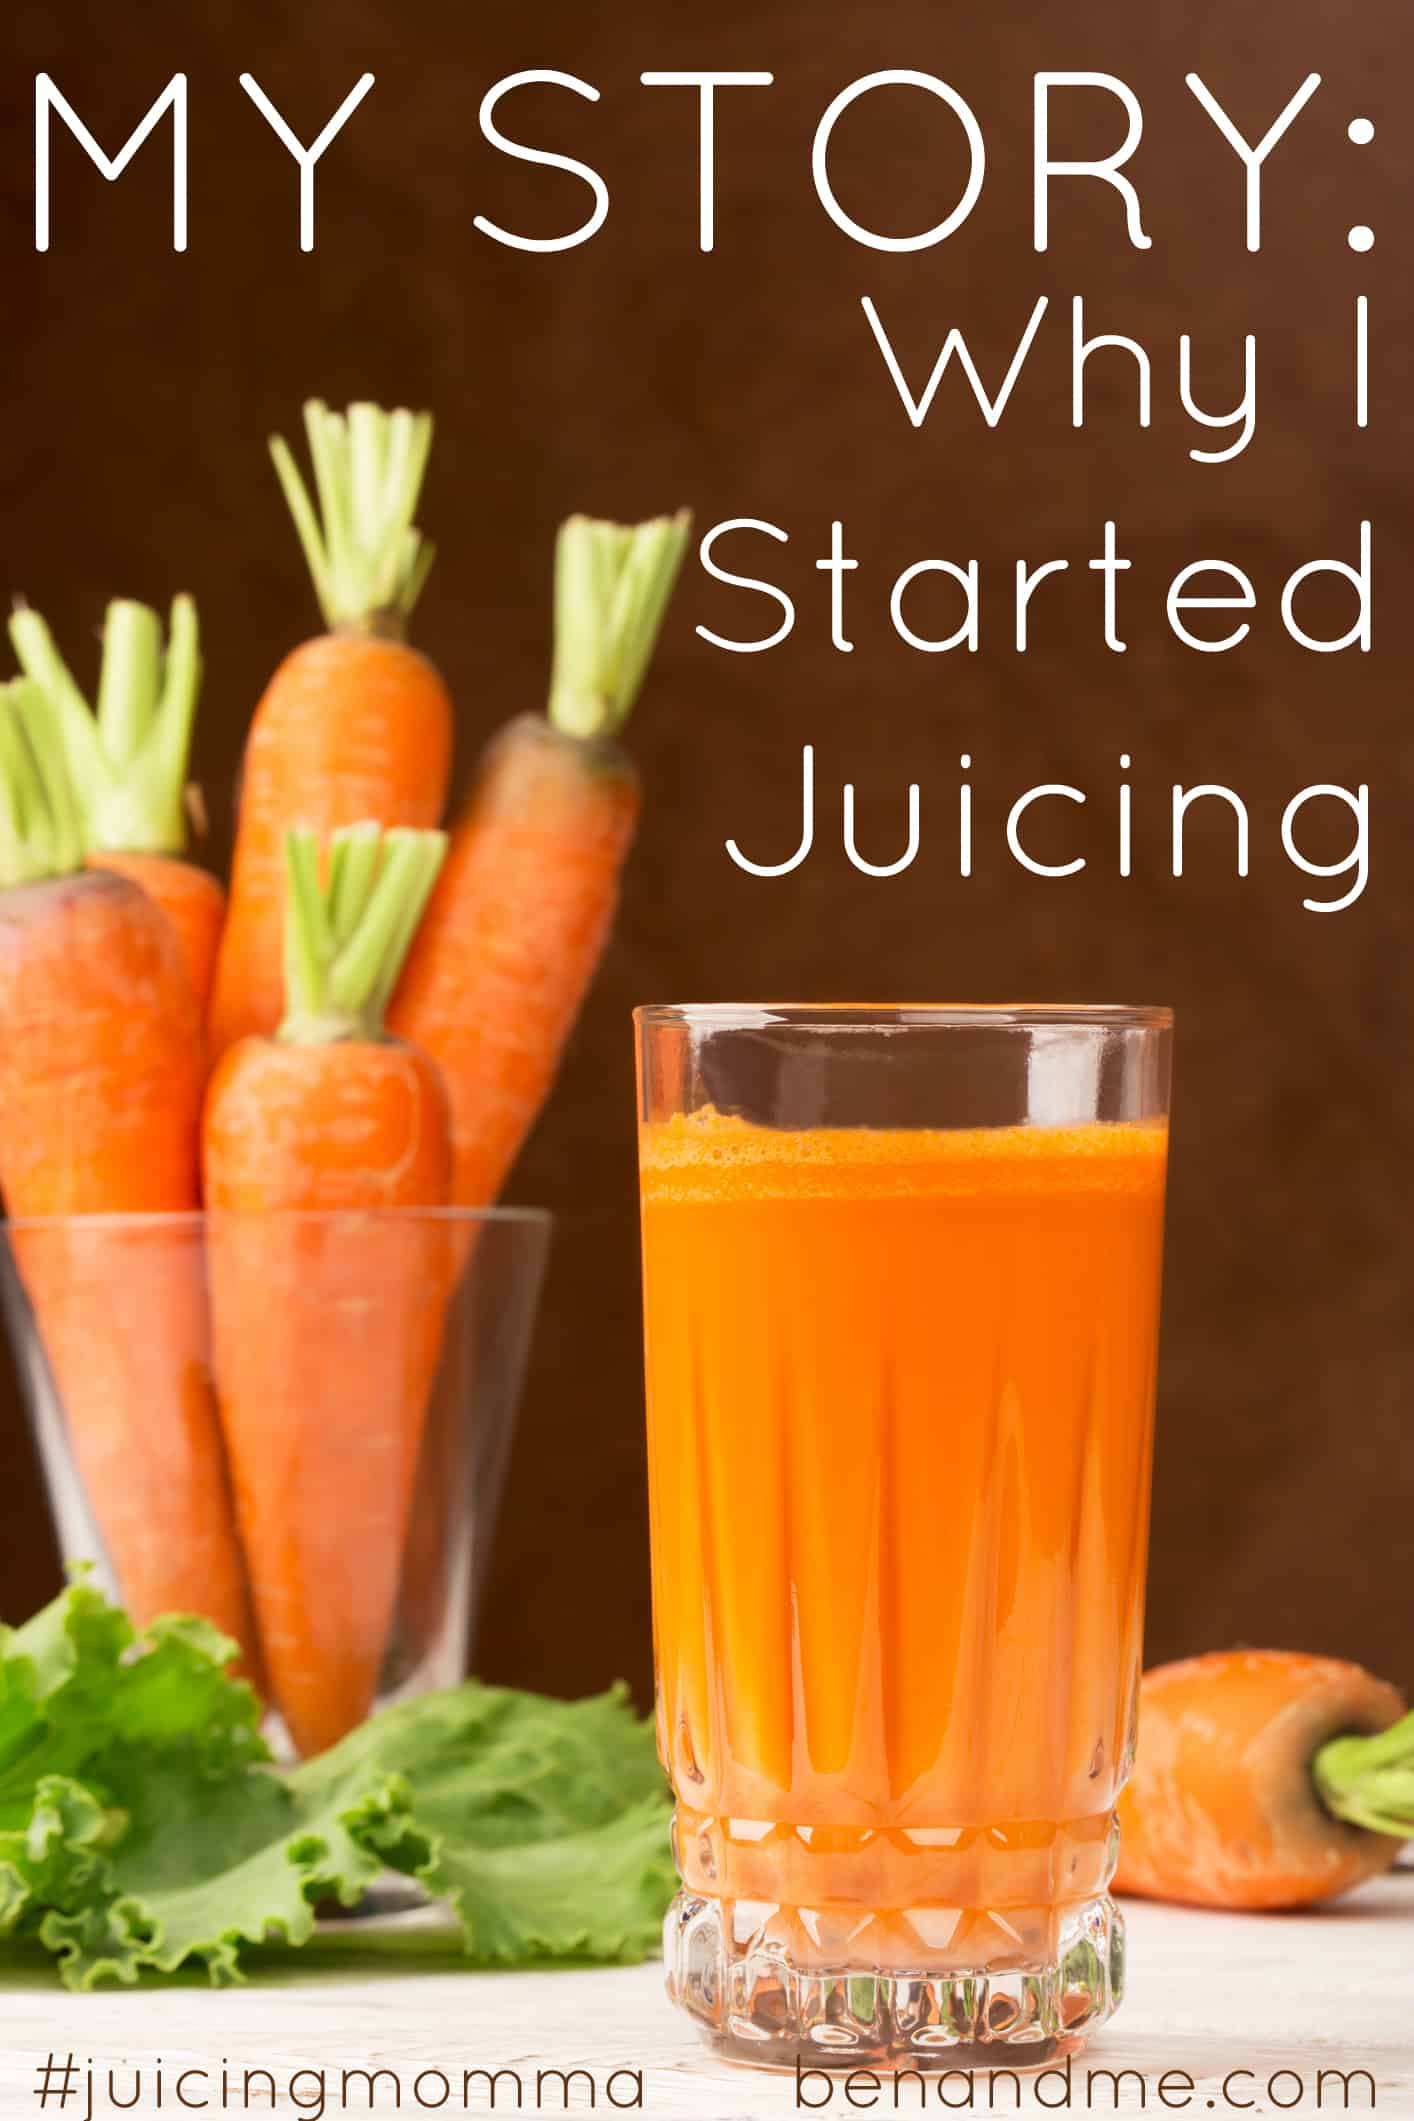 My Story (why I started juicing)